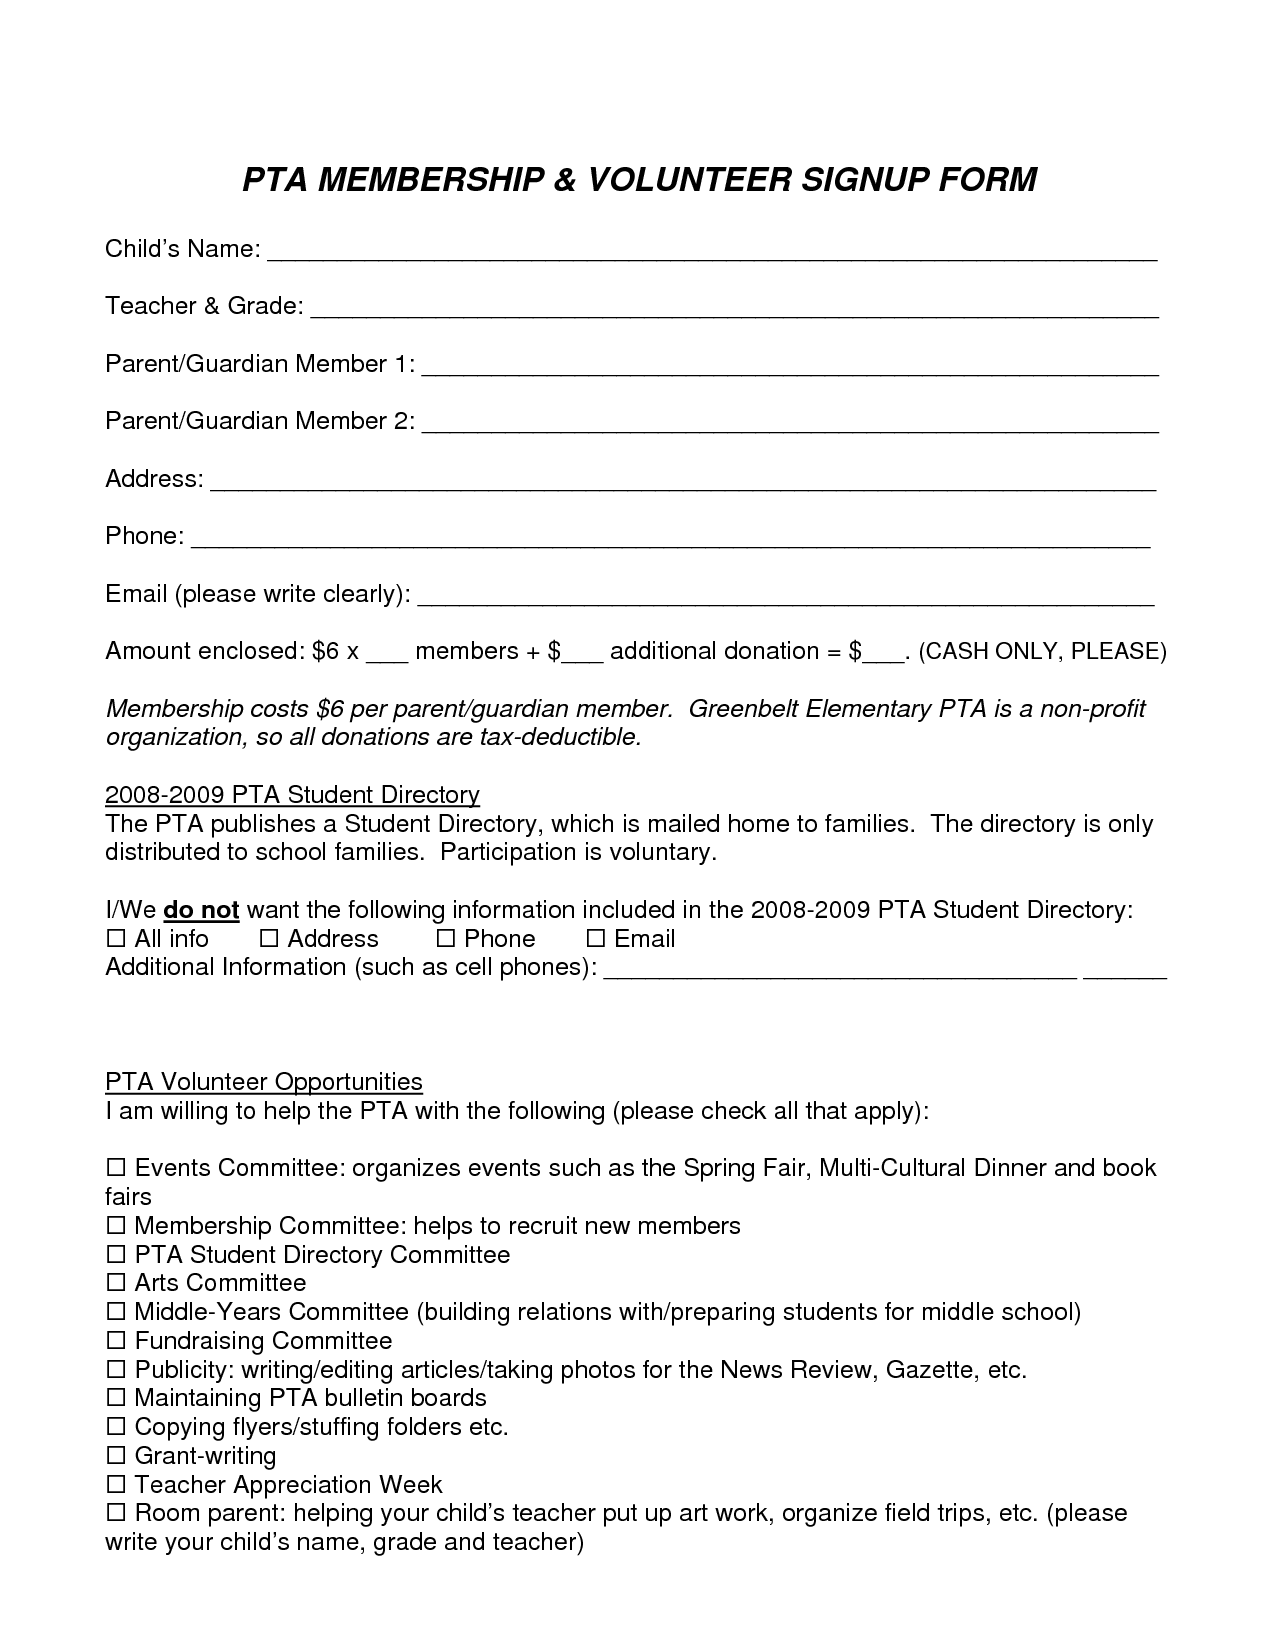 PTA membership form | PTA | Pinterest | Pta, School and Pta school